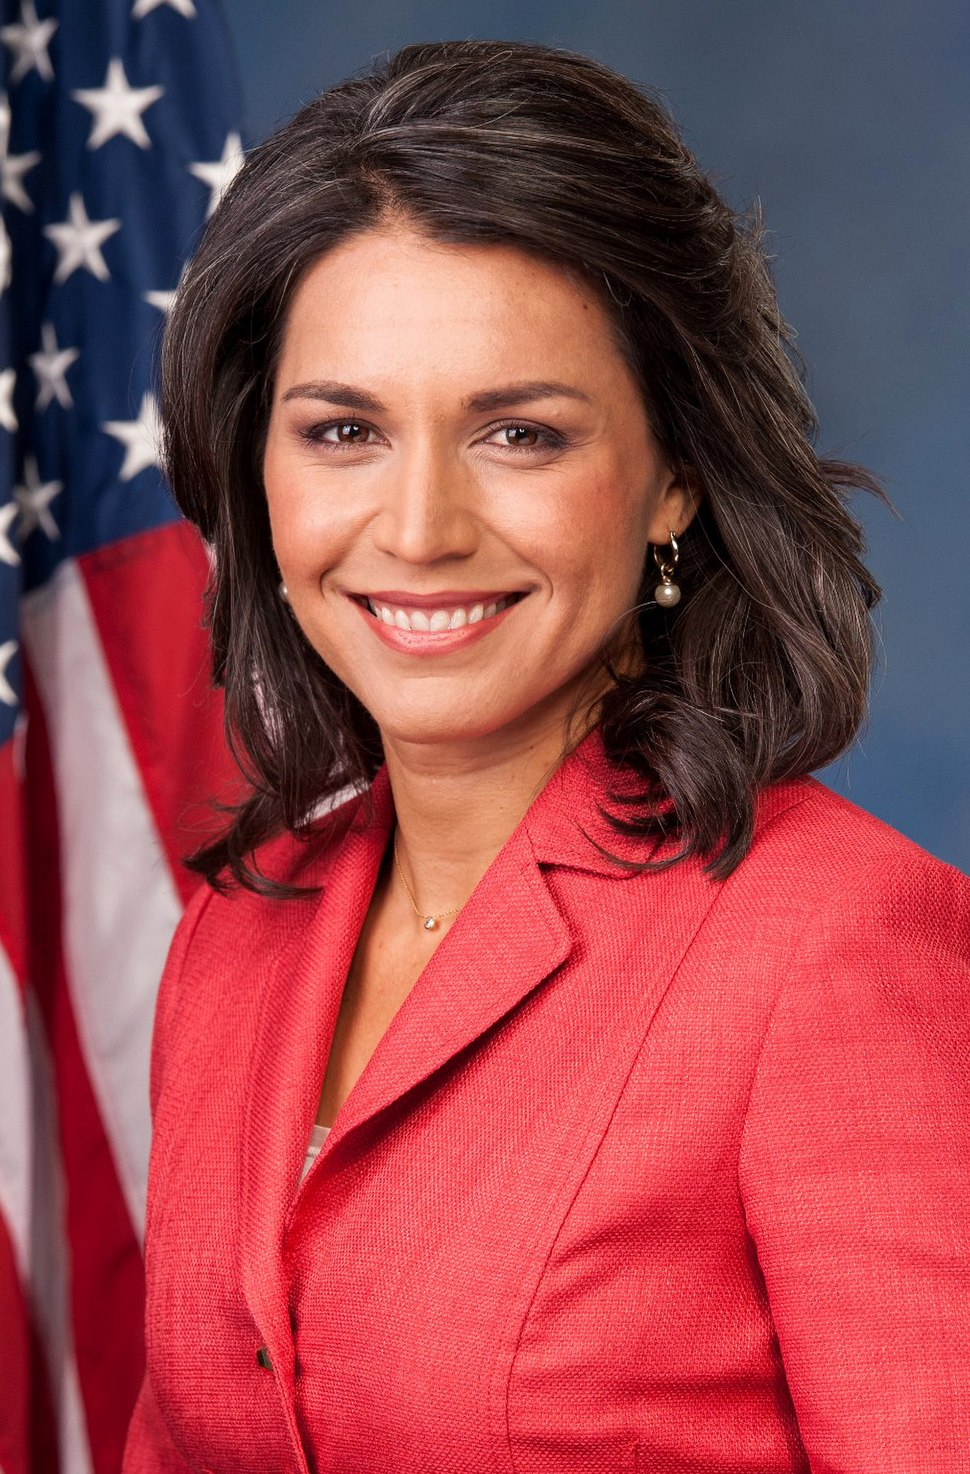 Tulsi Gabbard, official portrait, 113th Congress (cropped)